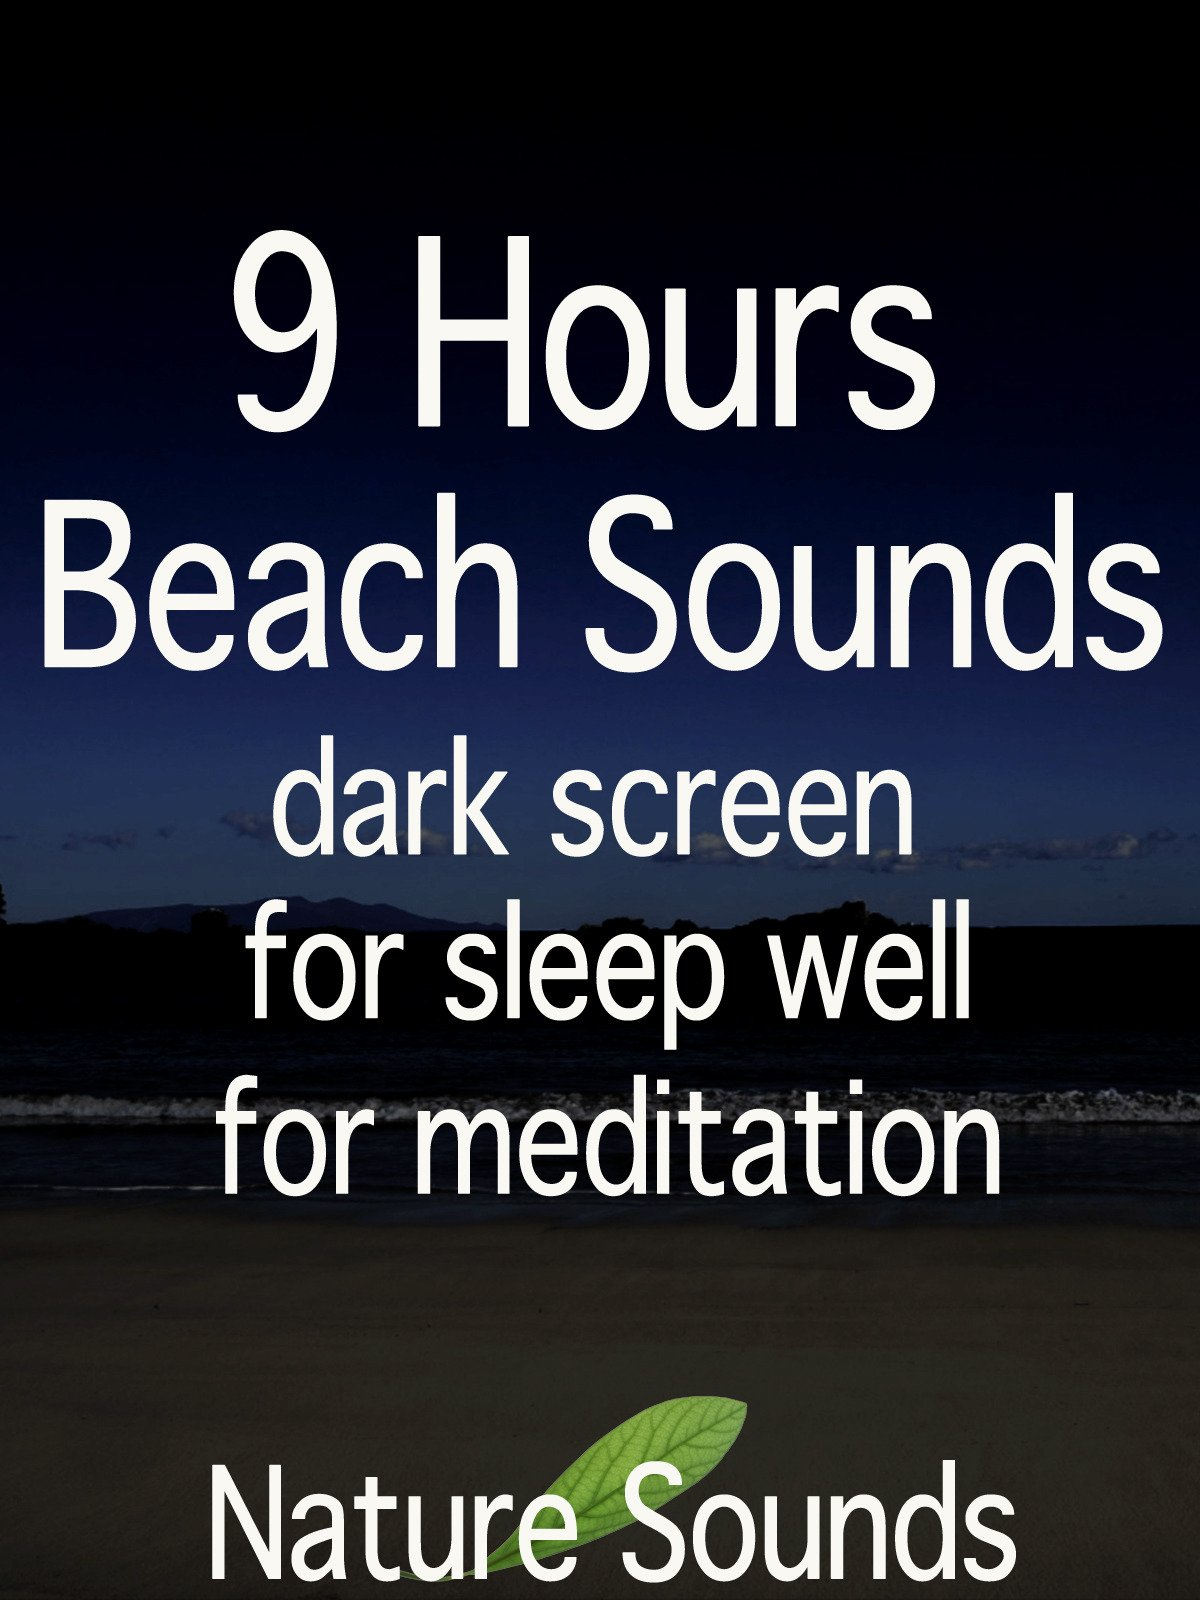 9 Hours Beach Sounds, dark screen, for sleep well, for meditation